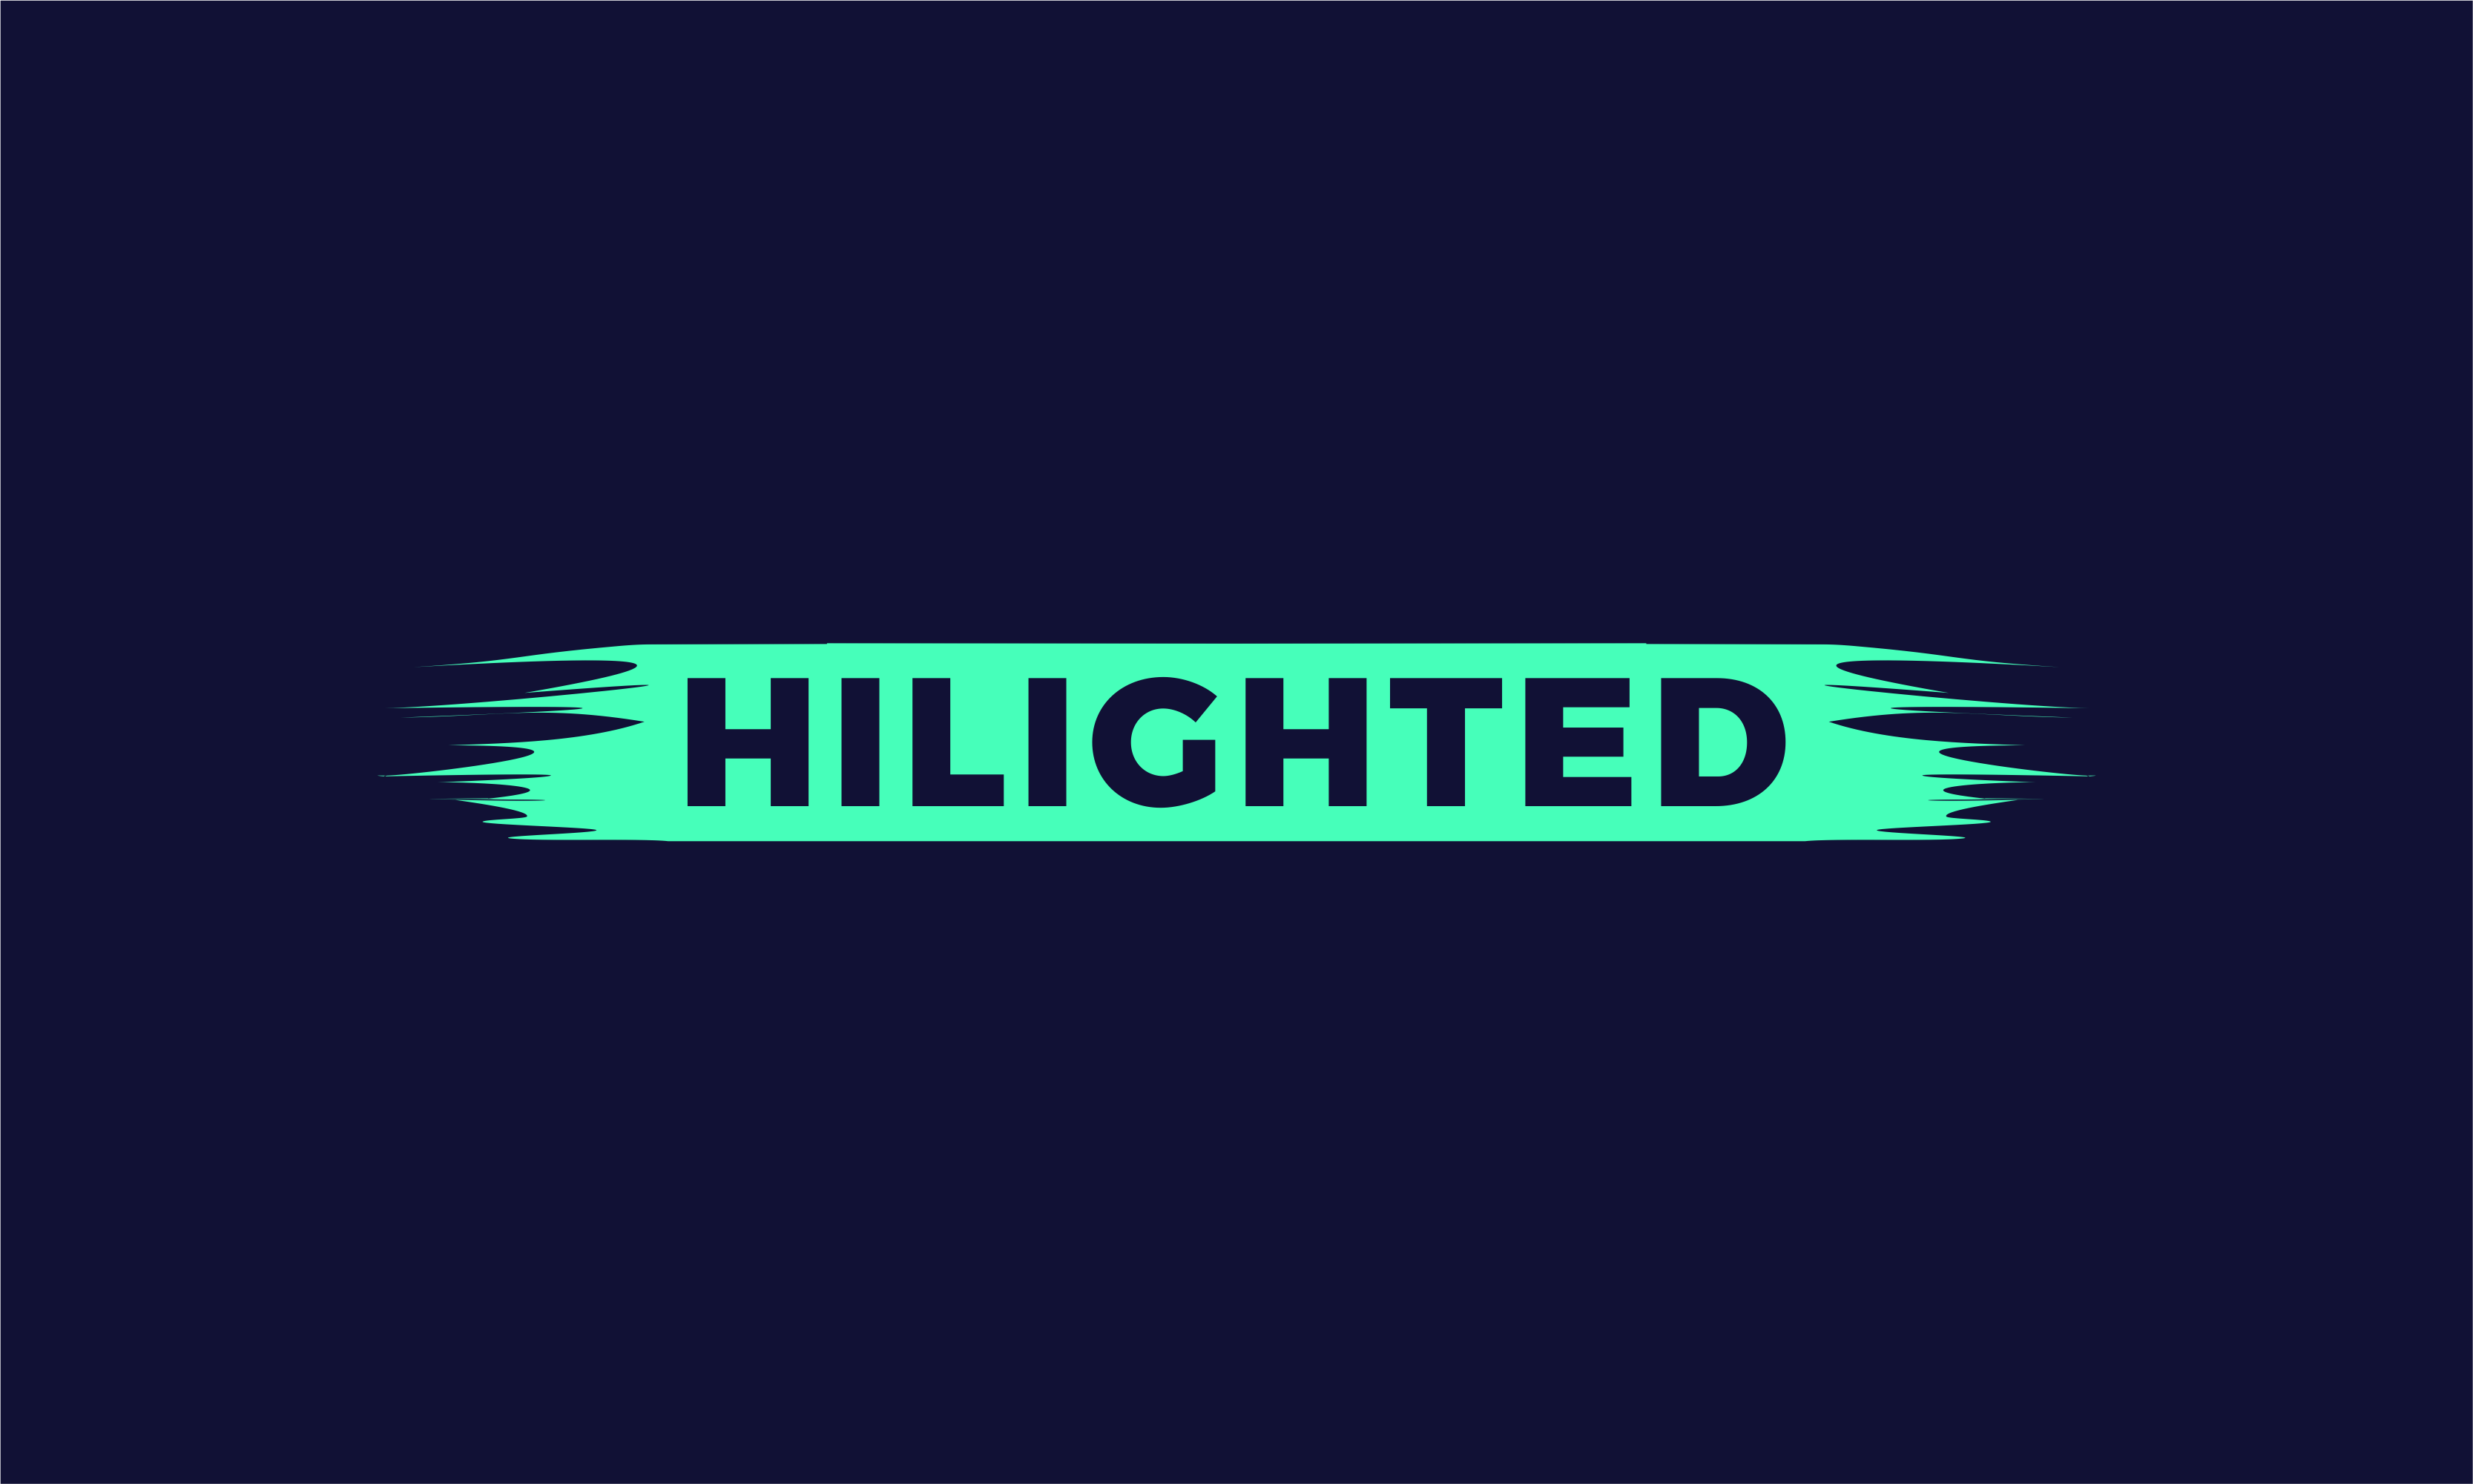 Hilighted